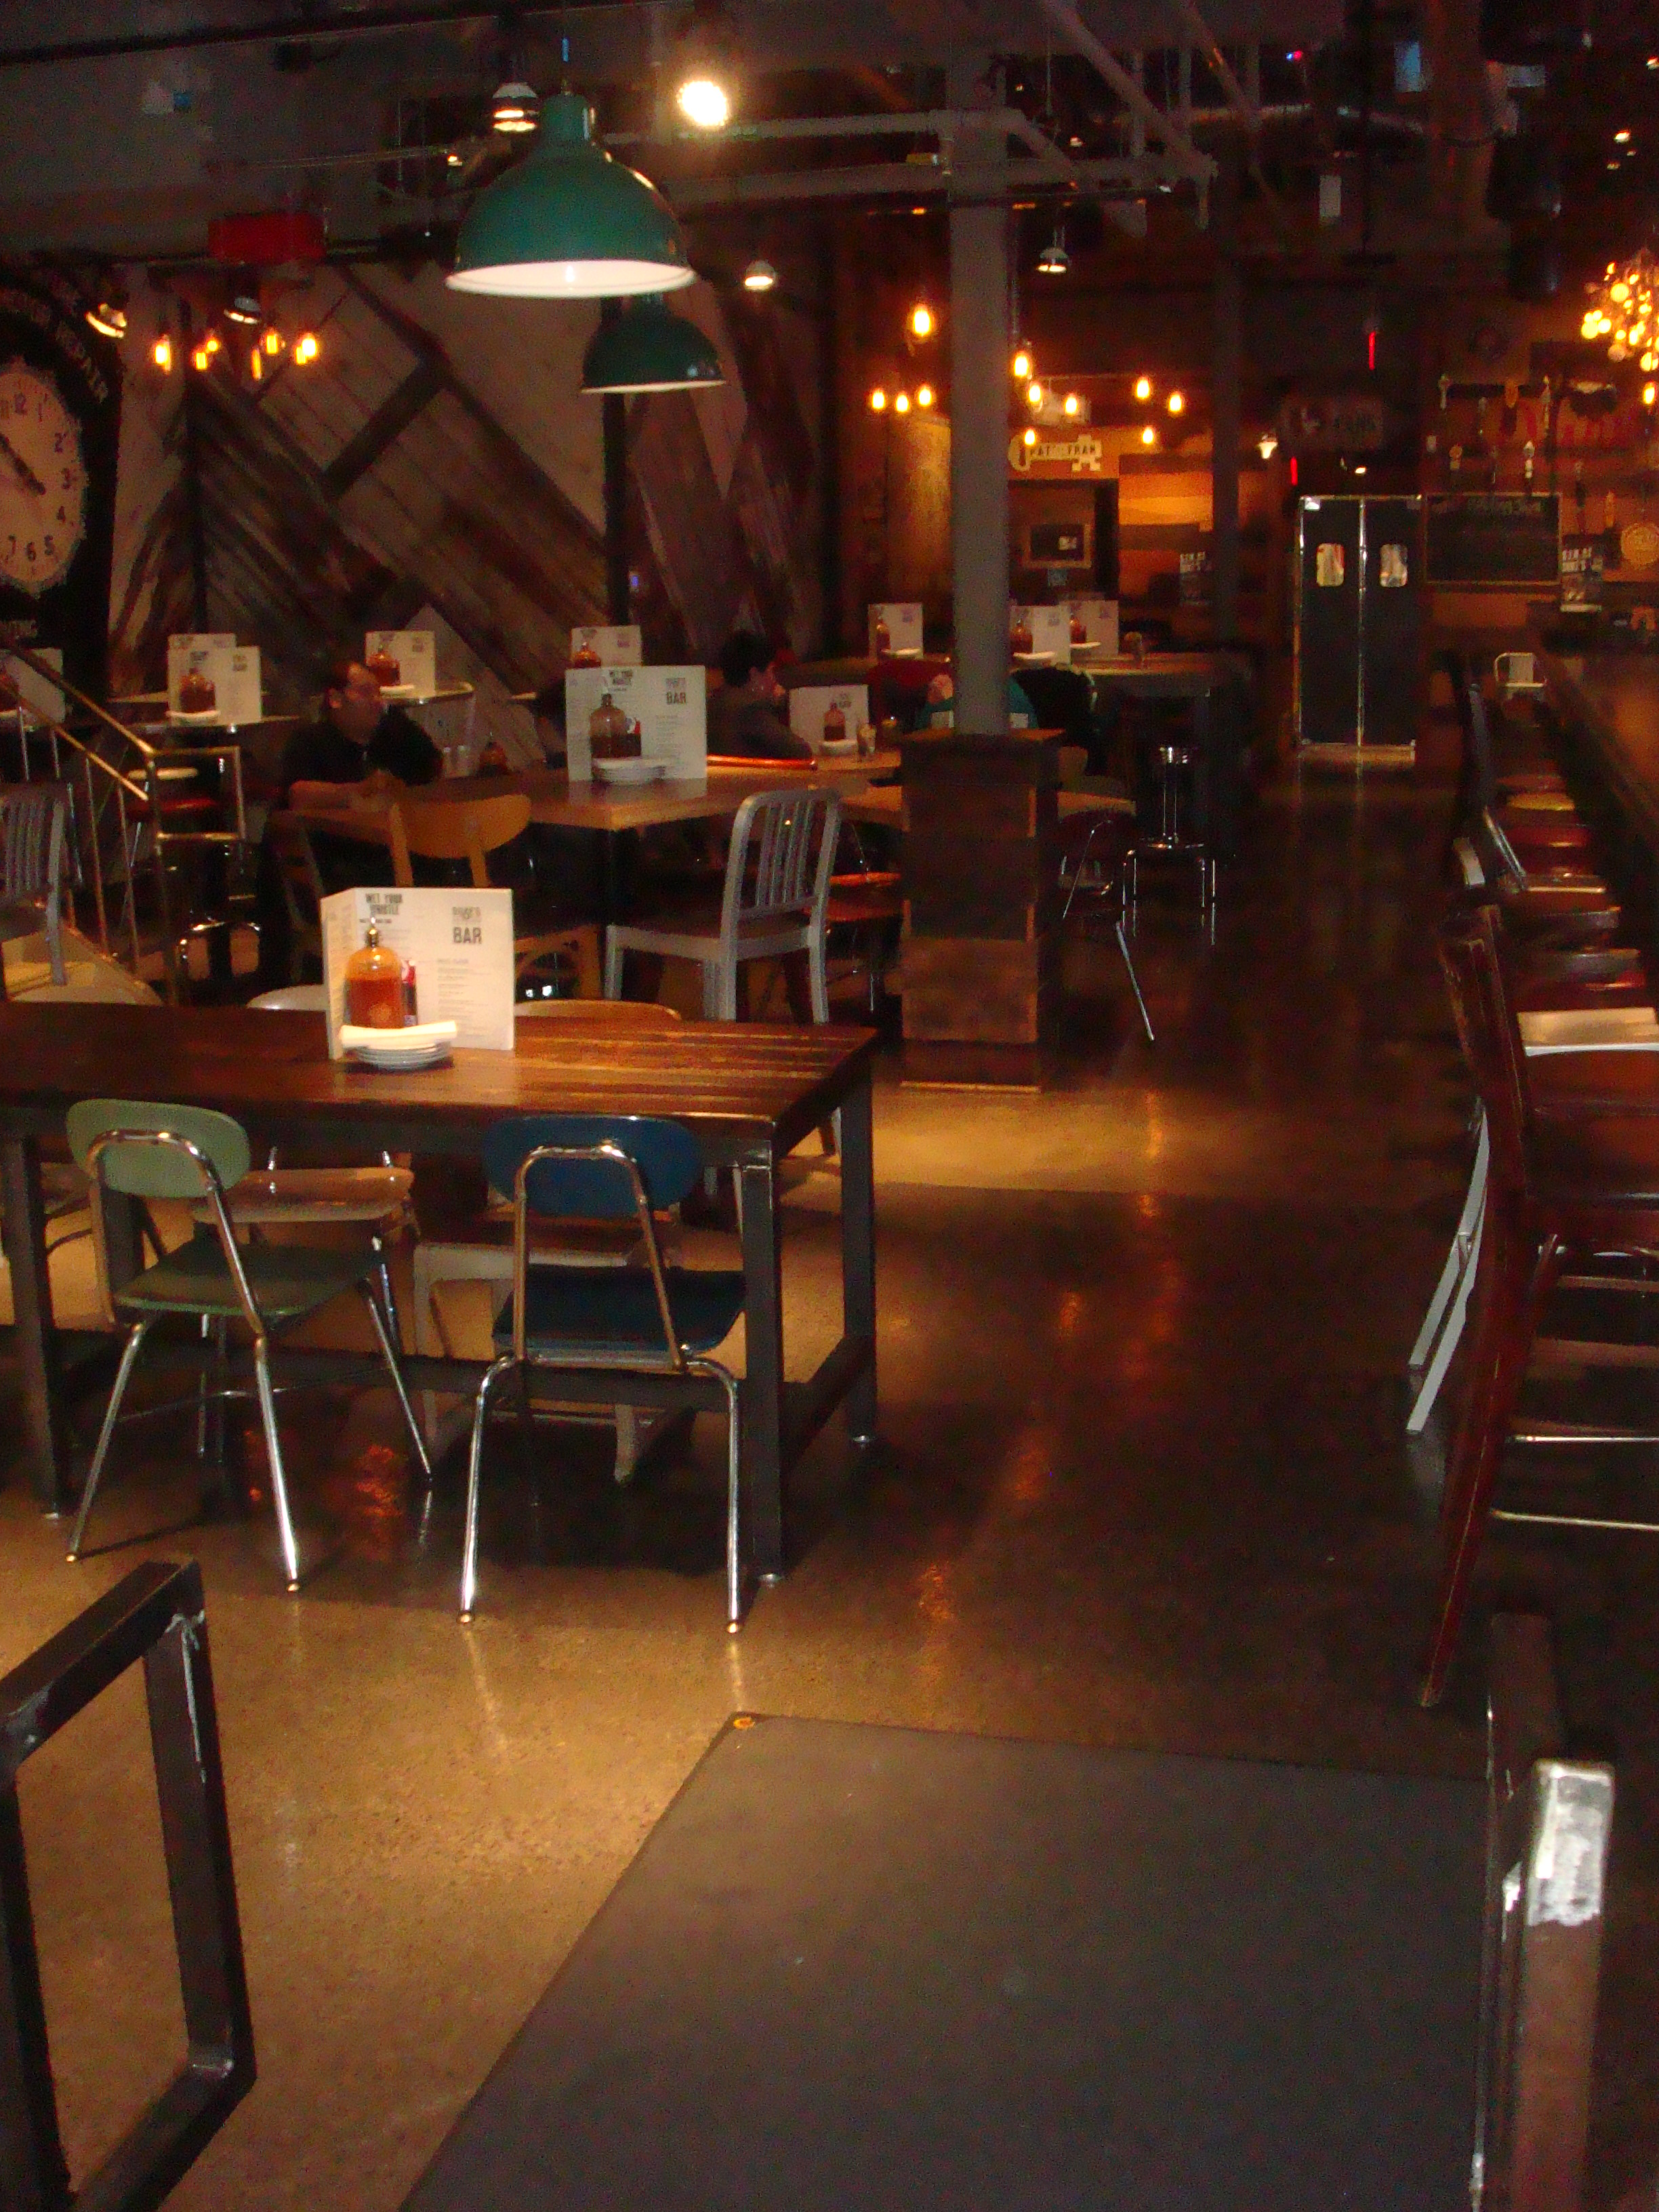 Picture of accessible interior of restaurant.